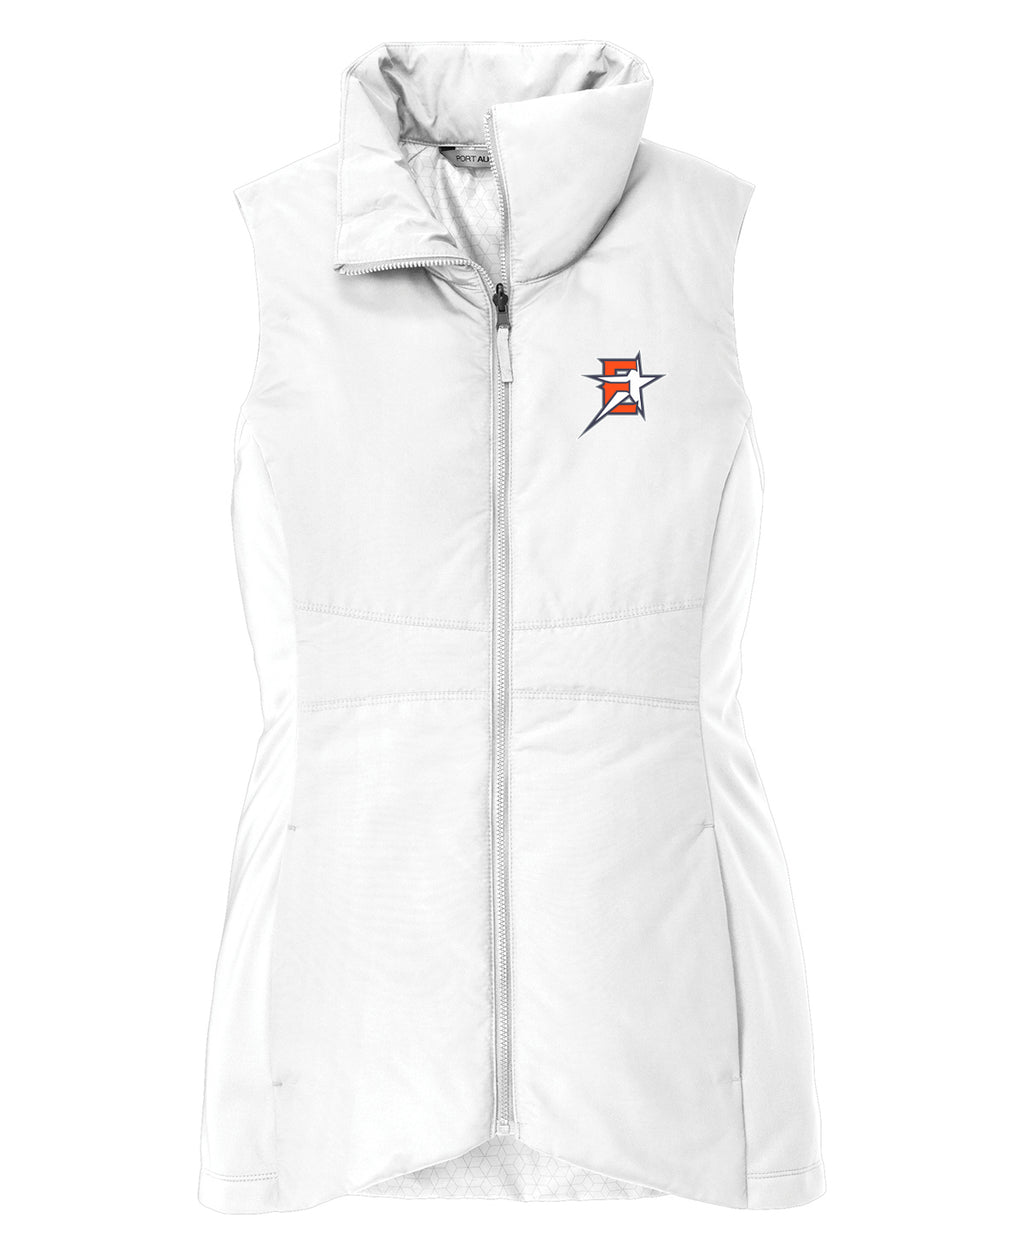 2019 Eastvale Girl's Softball Women's Vest